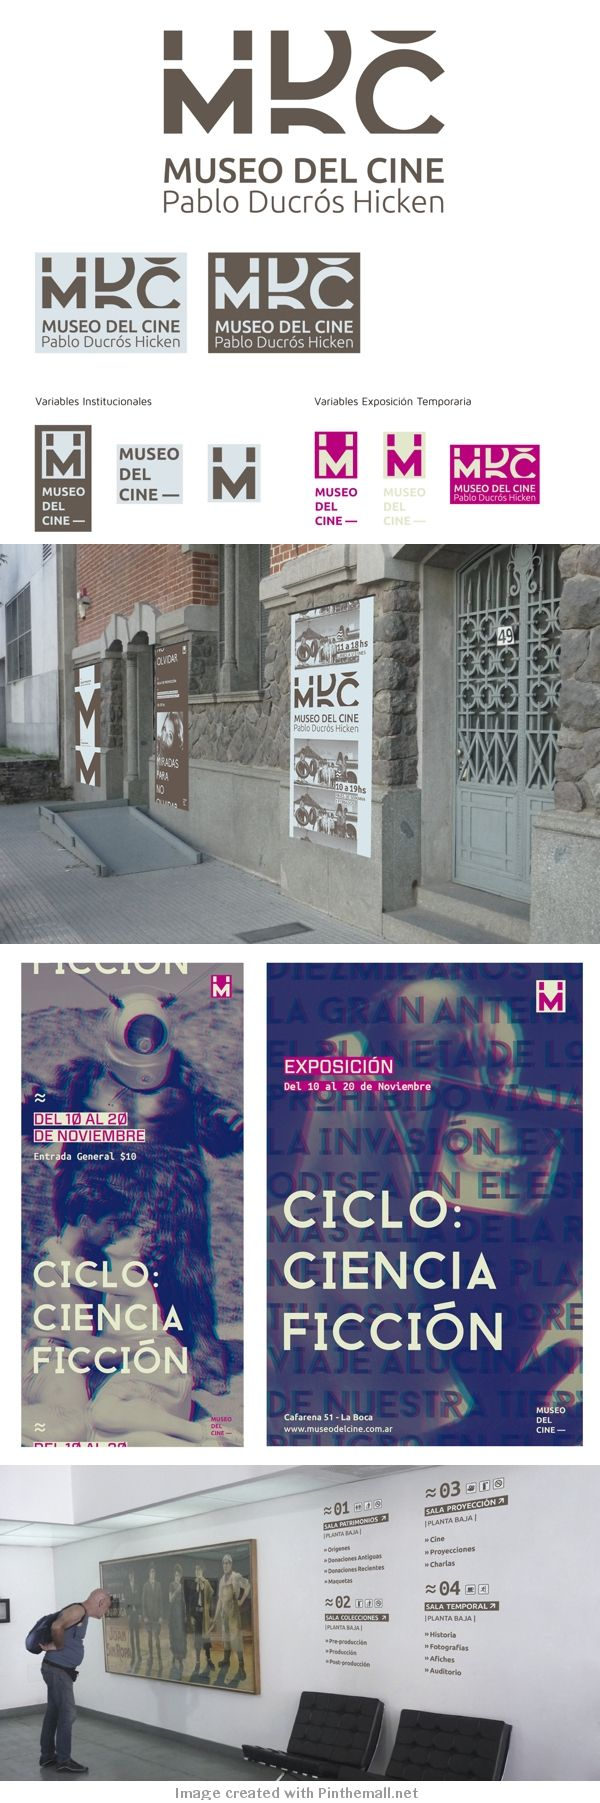 museo del cine / identidad on Behance